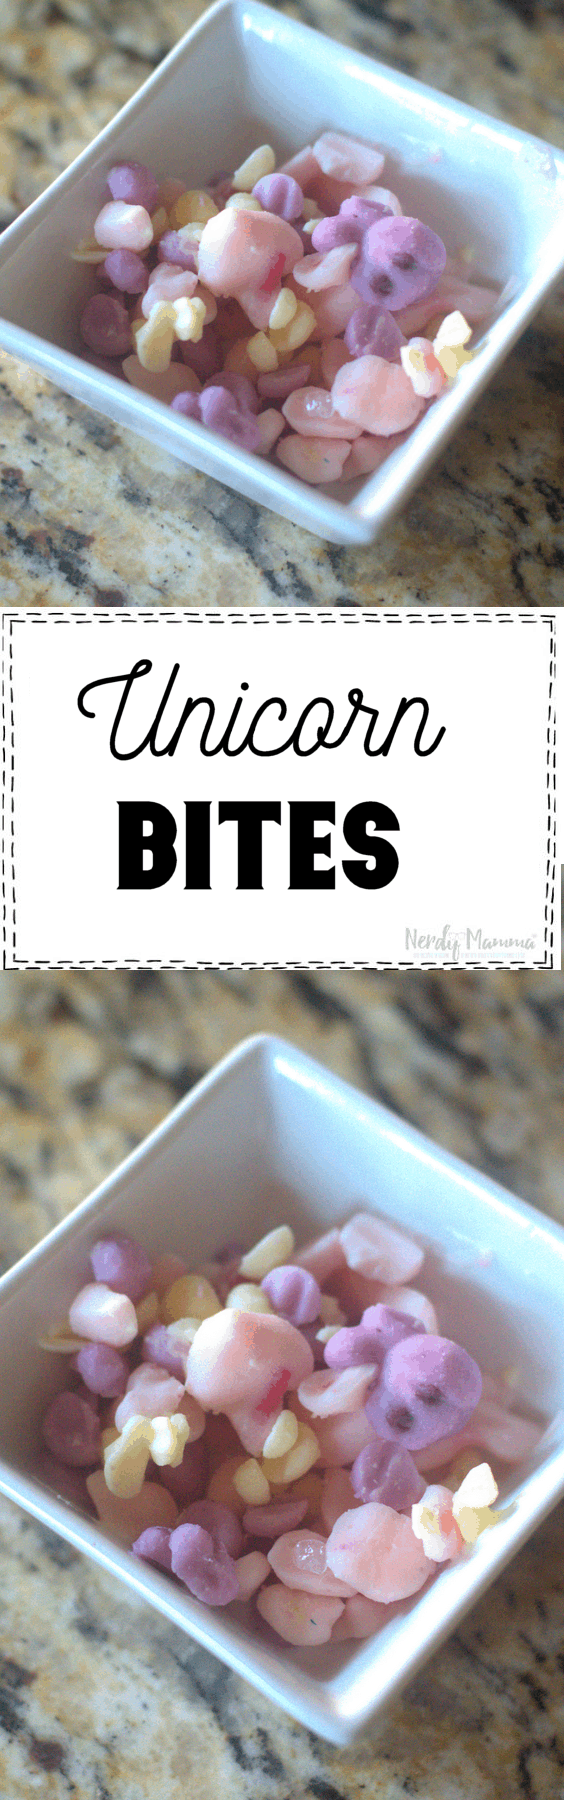 Unicorn Bite treats